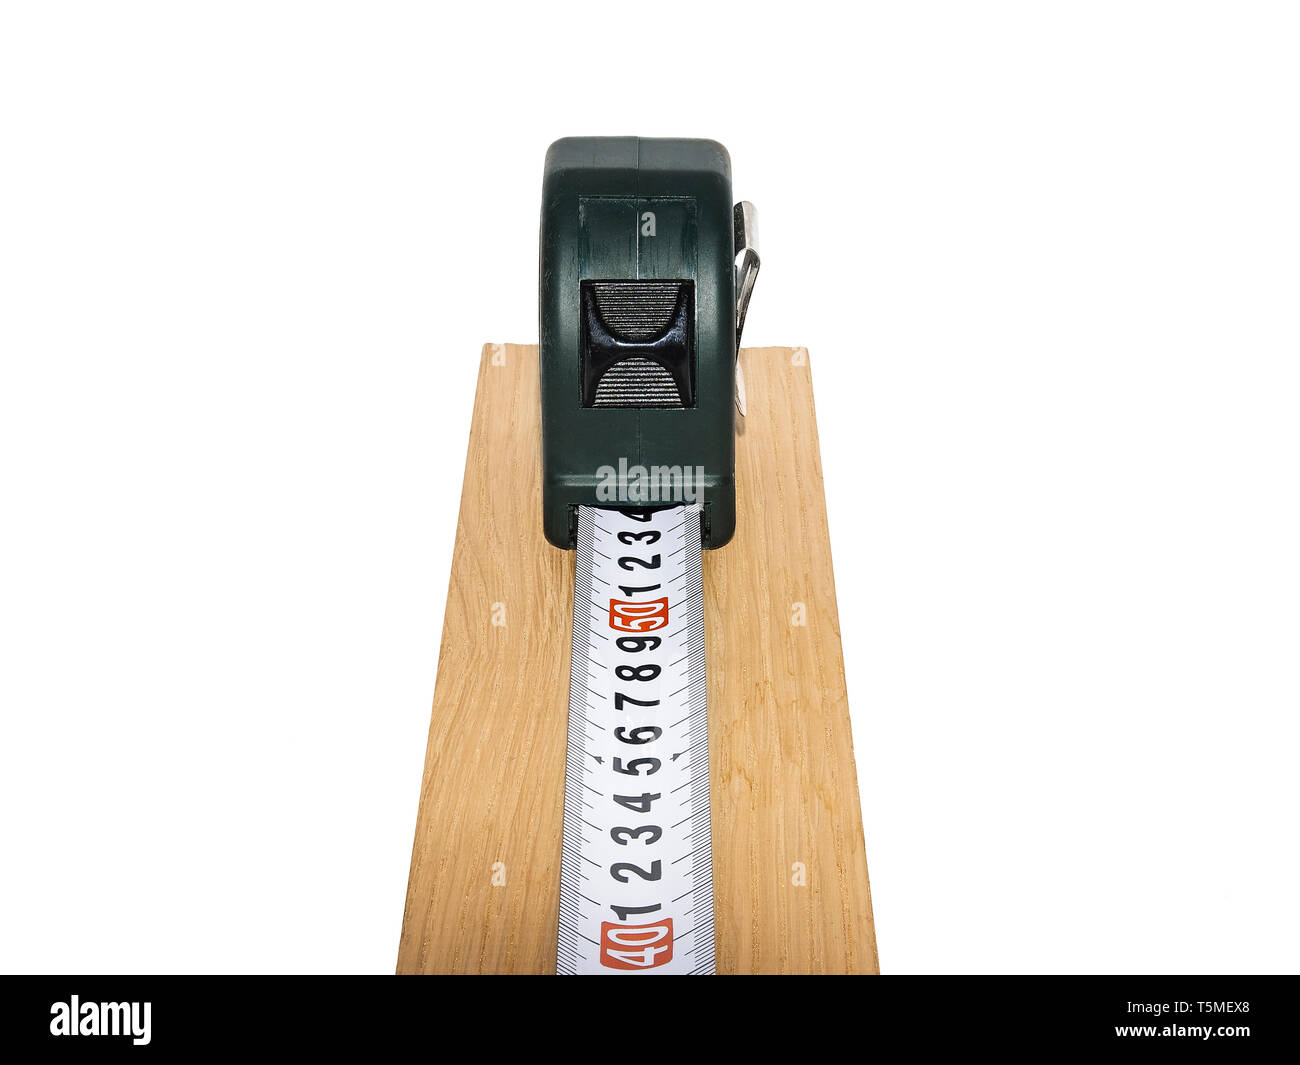 A tape measure on a piece of wood measuring between 49 cm and 50 cm. - Stock Image